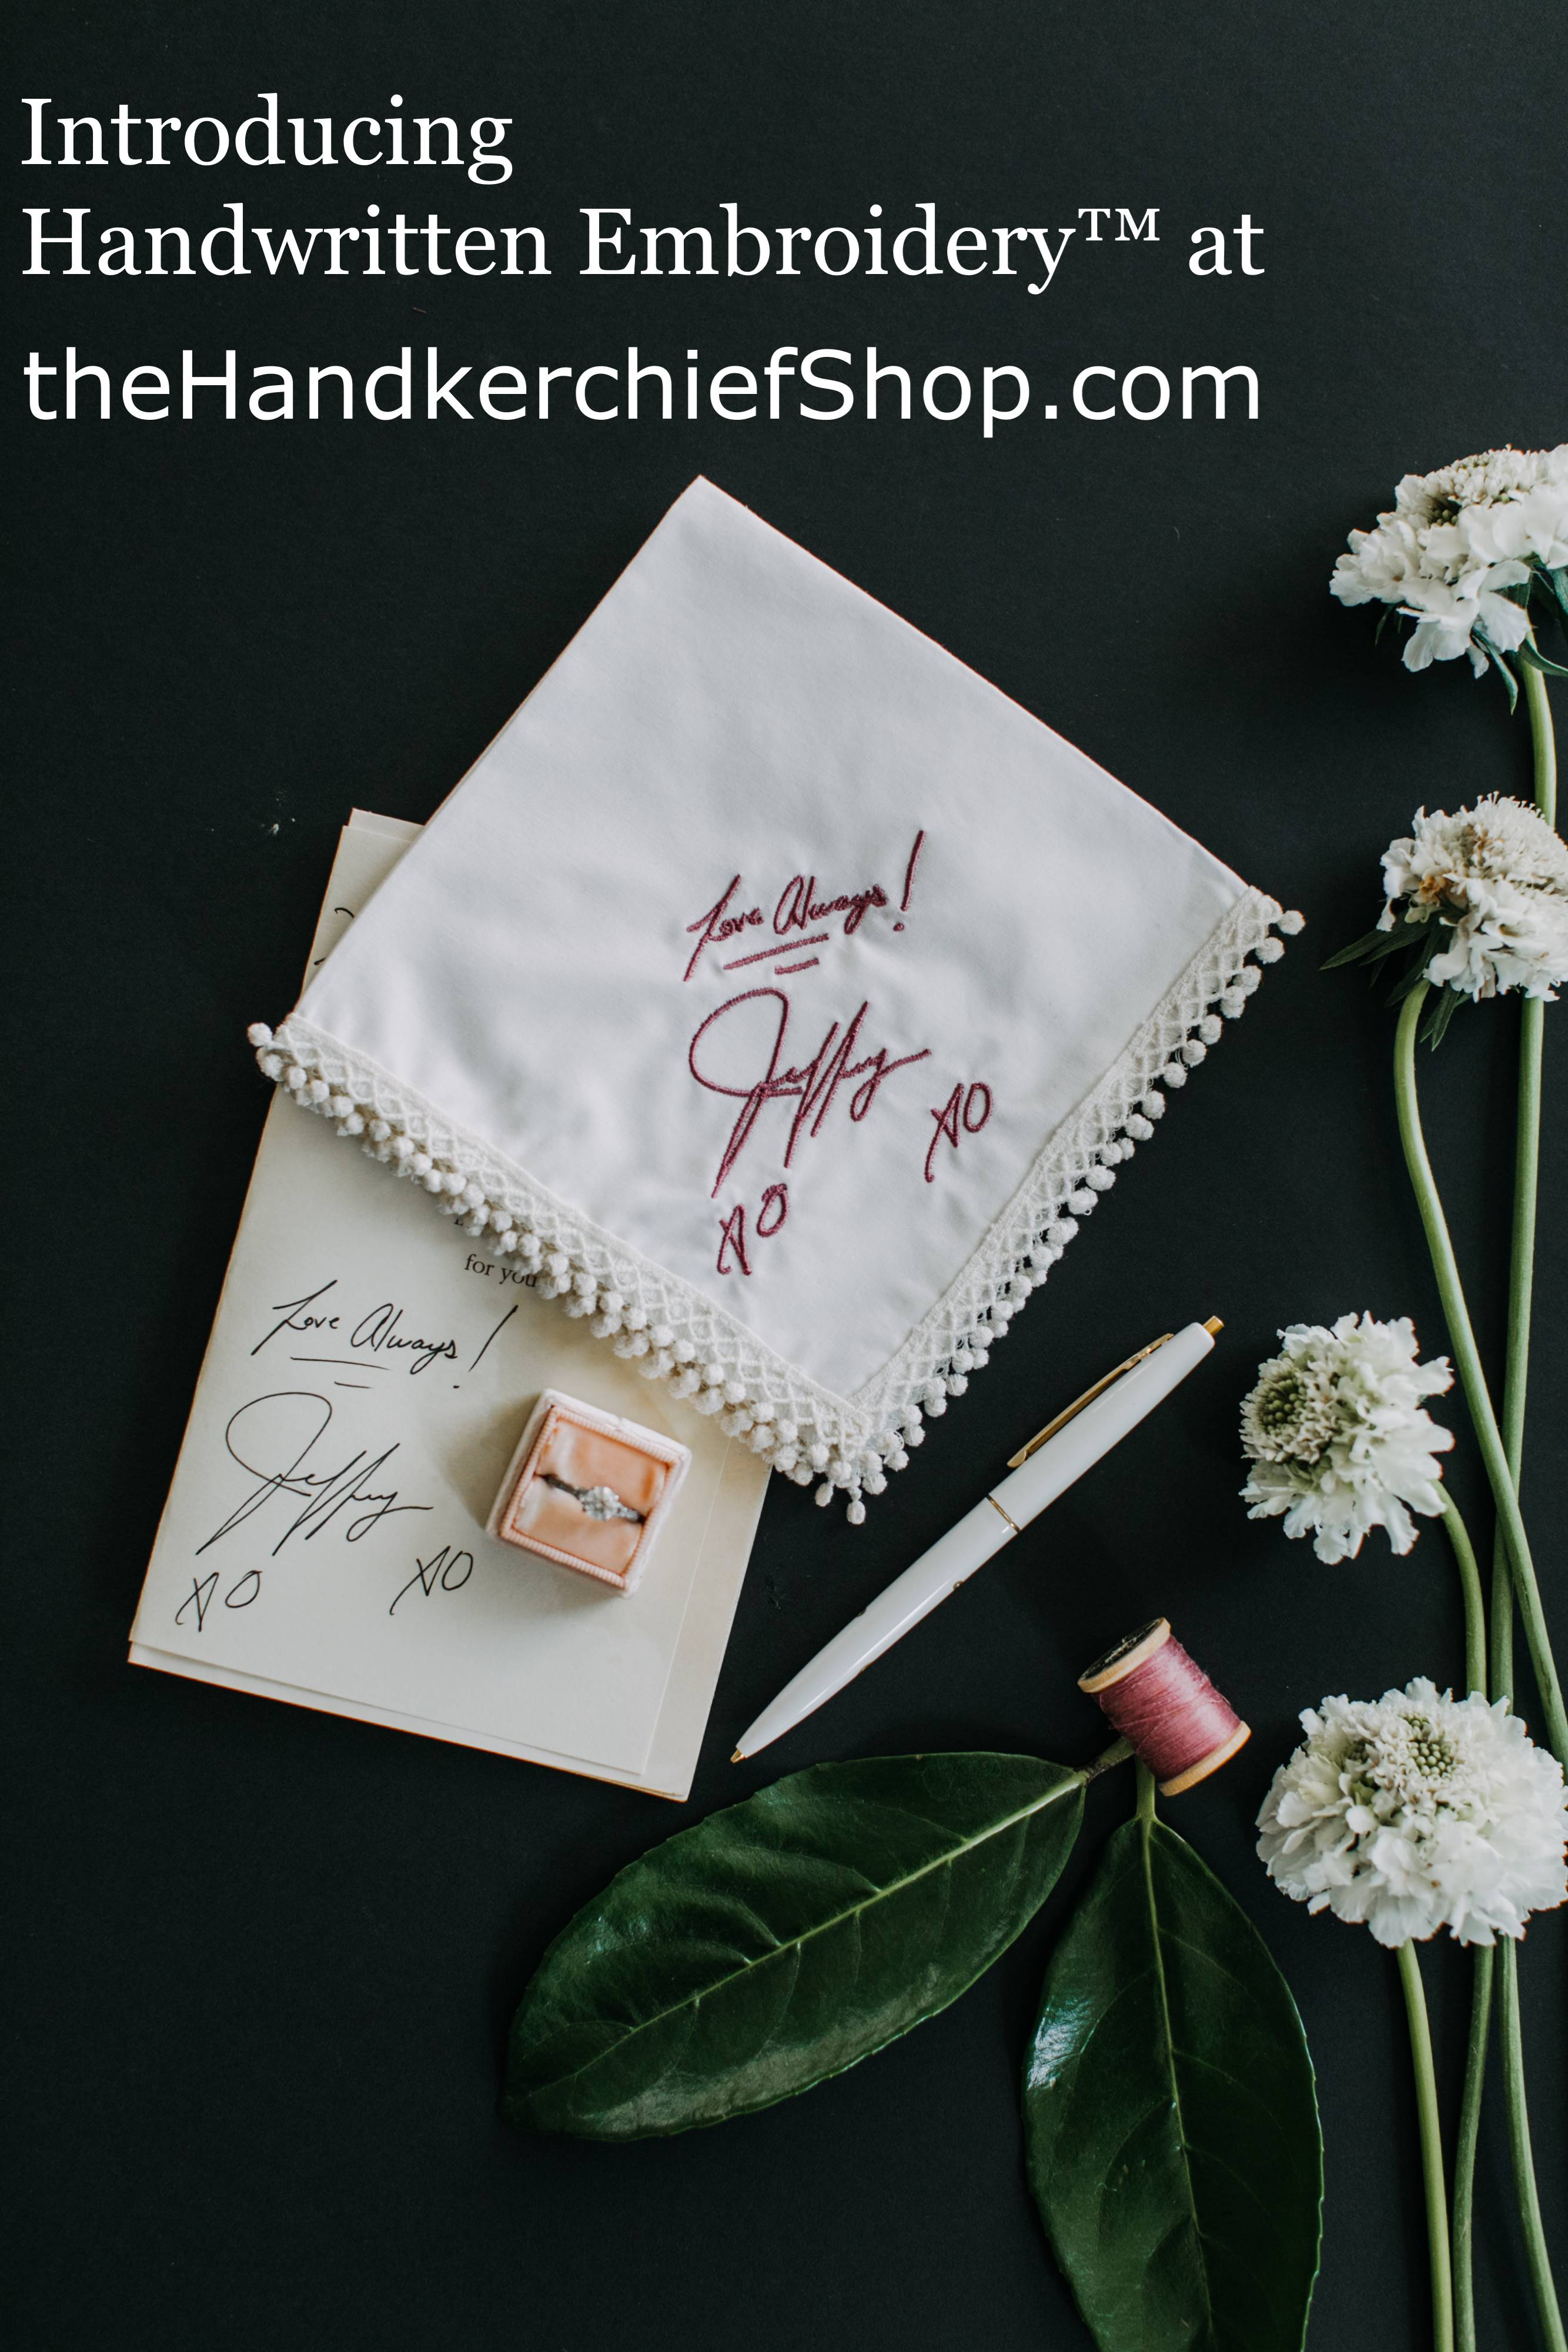 Handwritten Embroidery at The Handkerchief Shop